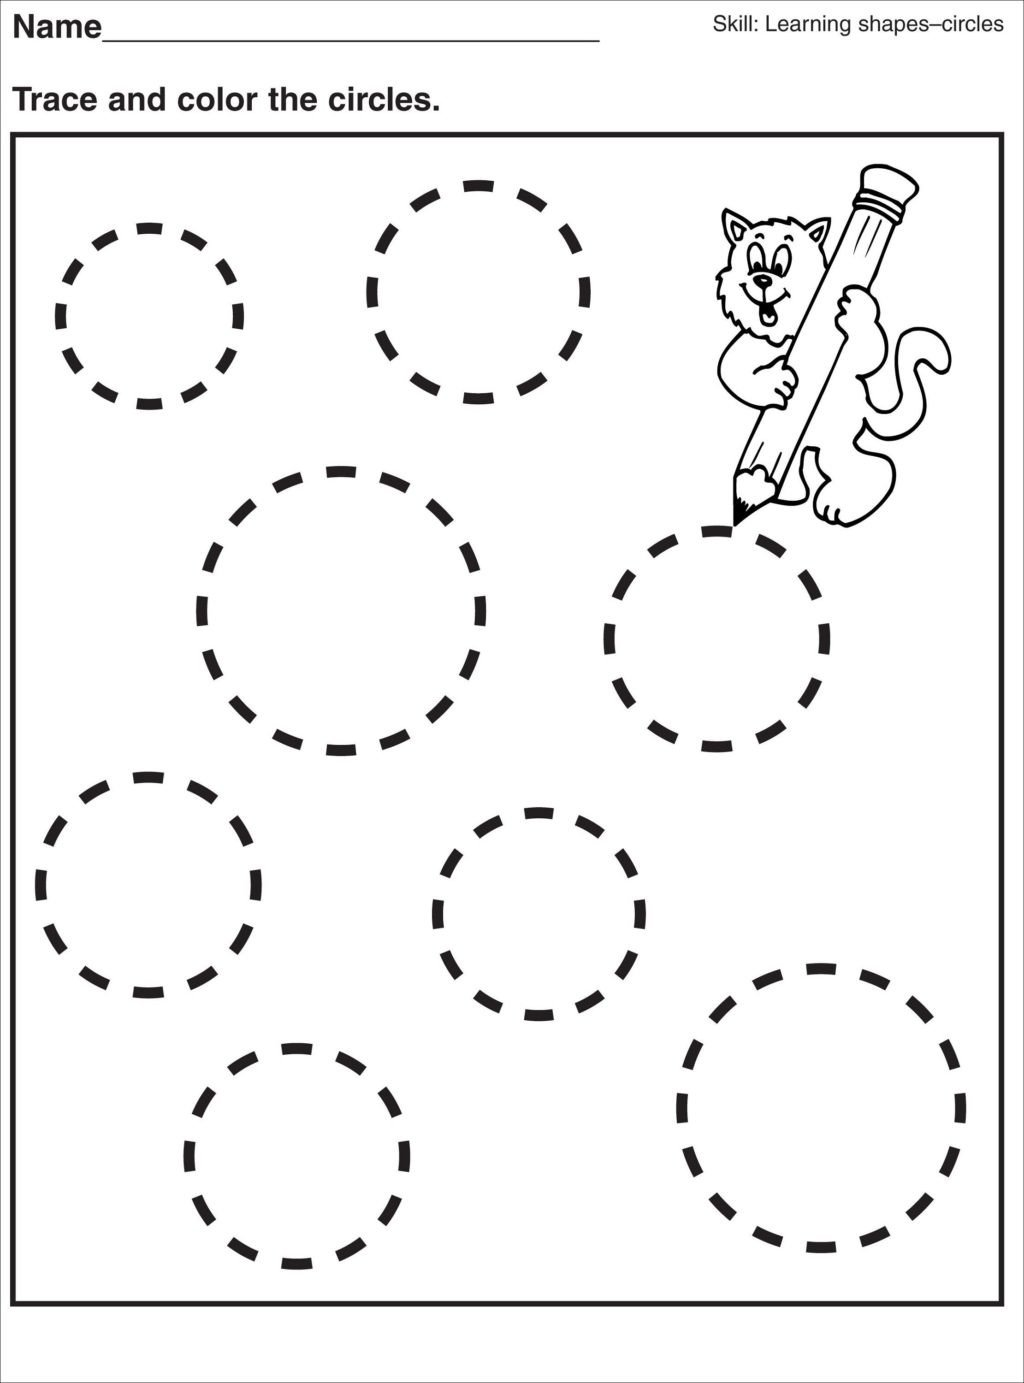 Shapes Worksheet for Kindergarten Worksheet Tracing Pagesor Preschool Shapes Worksheet